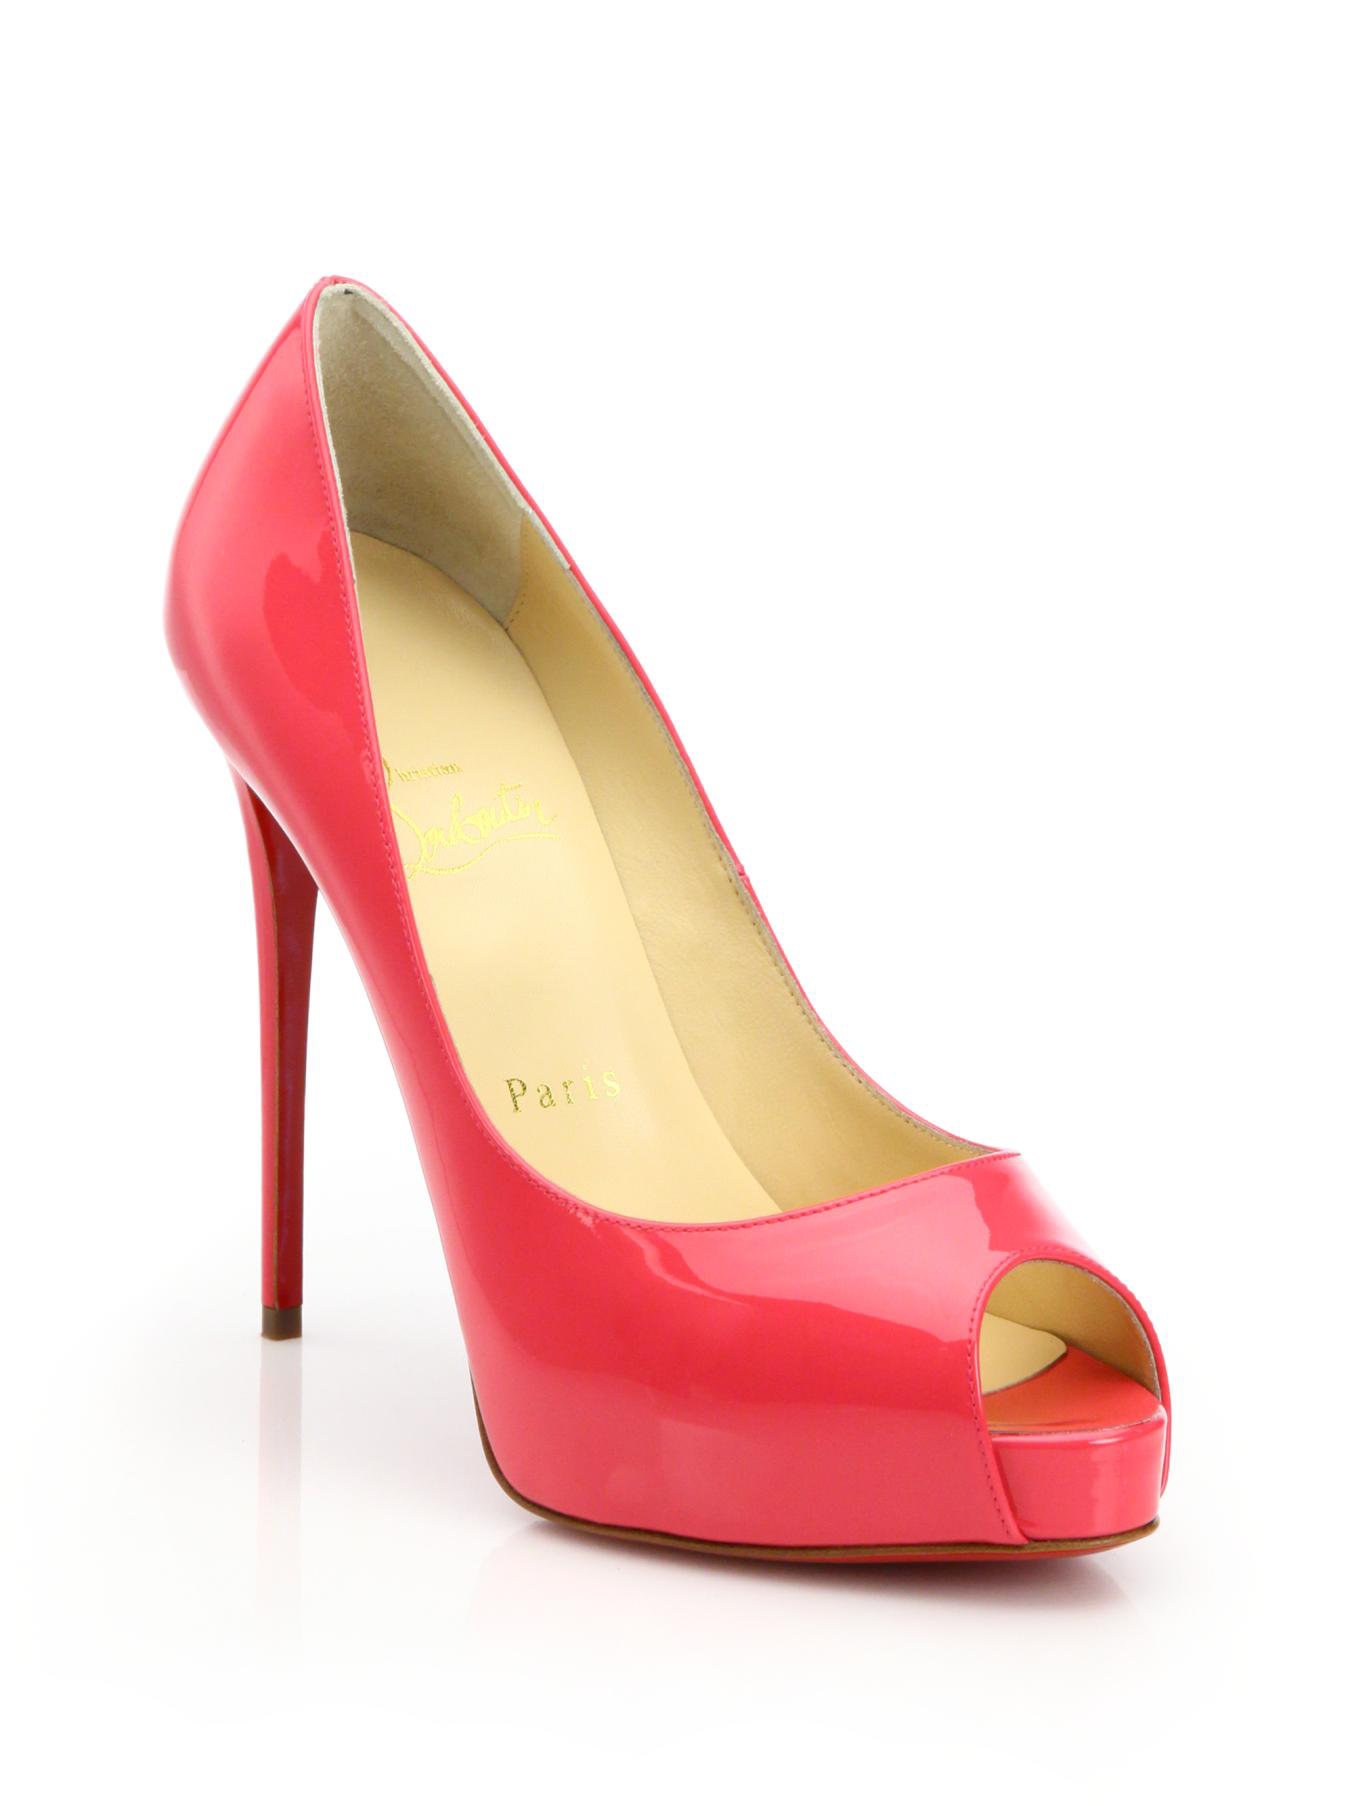 huge selection of d3821 6c910 Christian Louboutin Pink New Very Prive Patent Leather Peep-toe Pumps